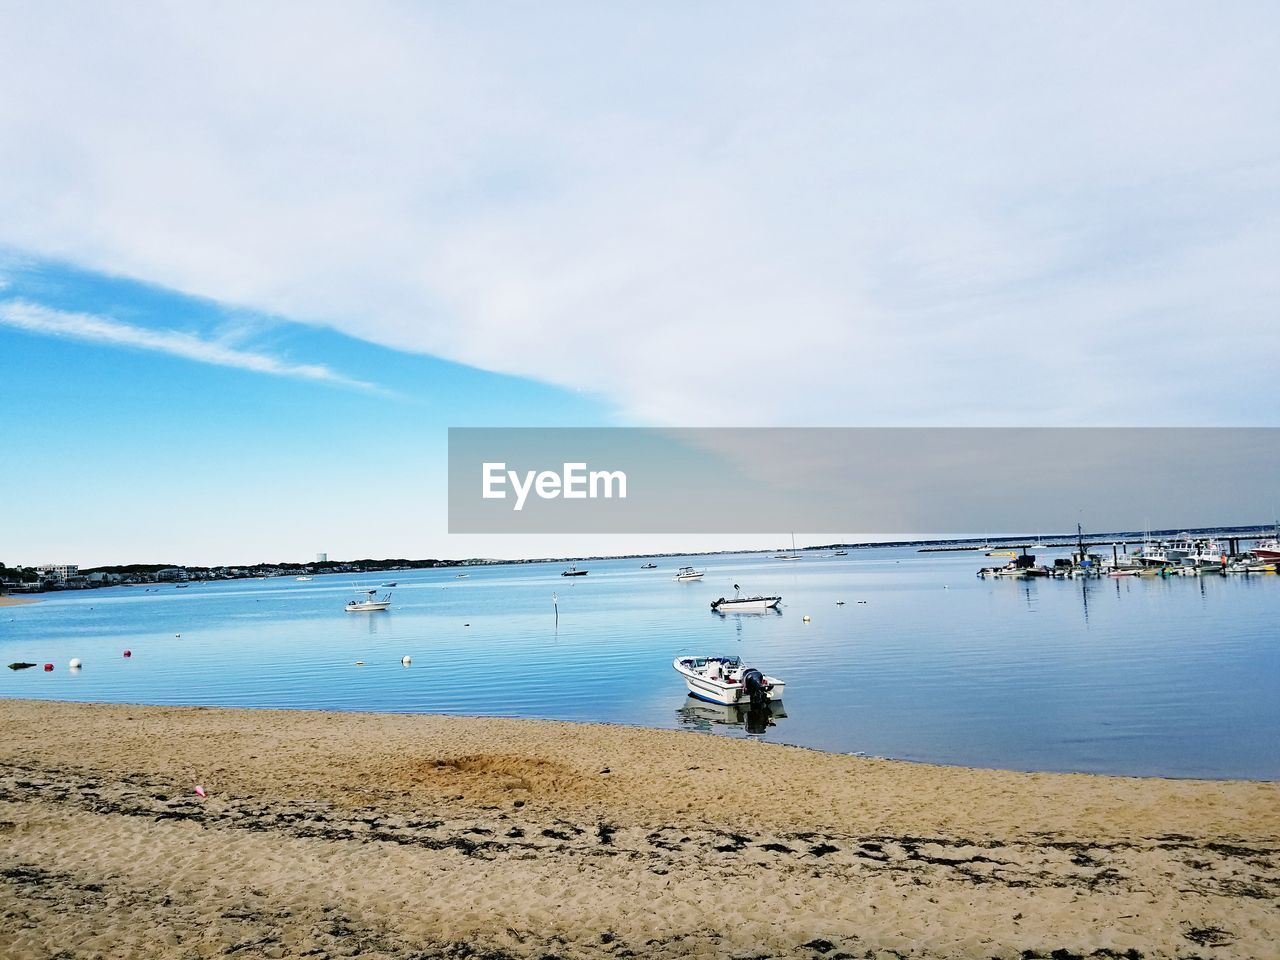 water, sky, land, beach, cloud - sky, scenics - nature, sea, beauty in nature, nature, day, real people, lifestyles, tranquil scene, non-urban scene, tranquility, sand, men, leisure activity, one person, outdoors